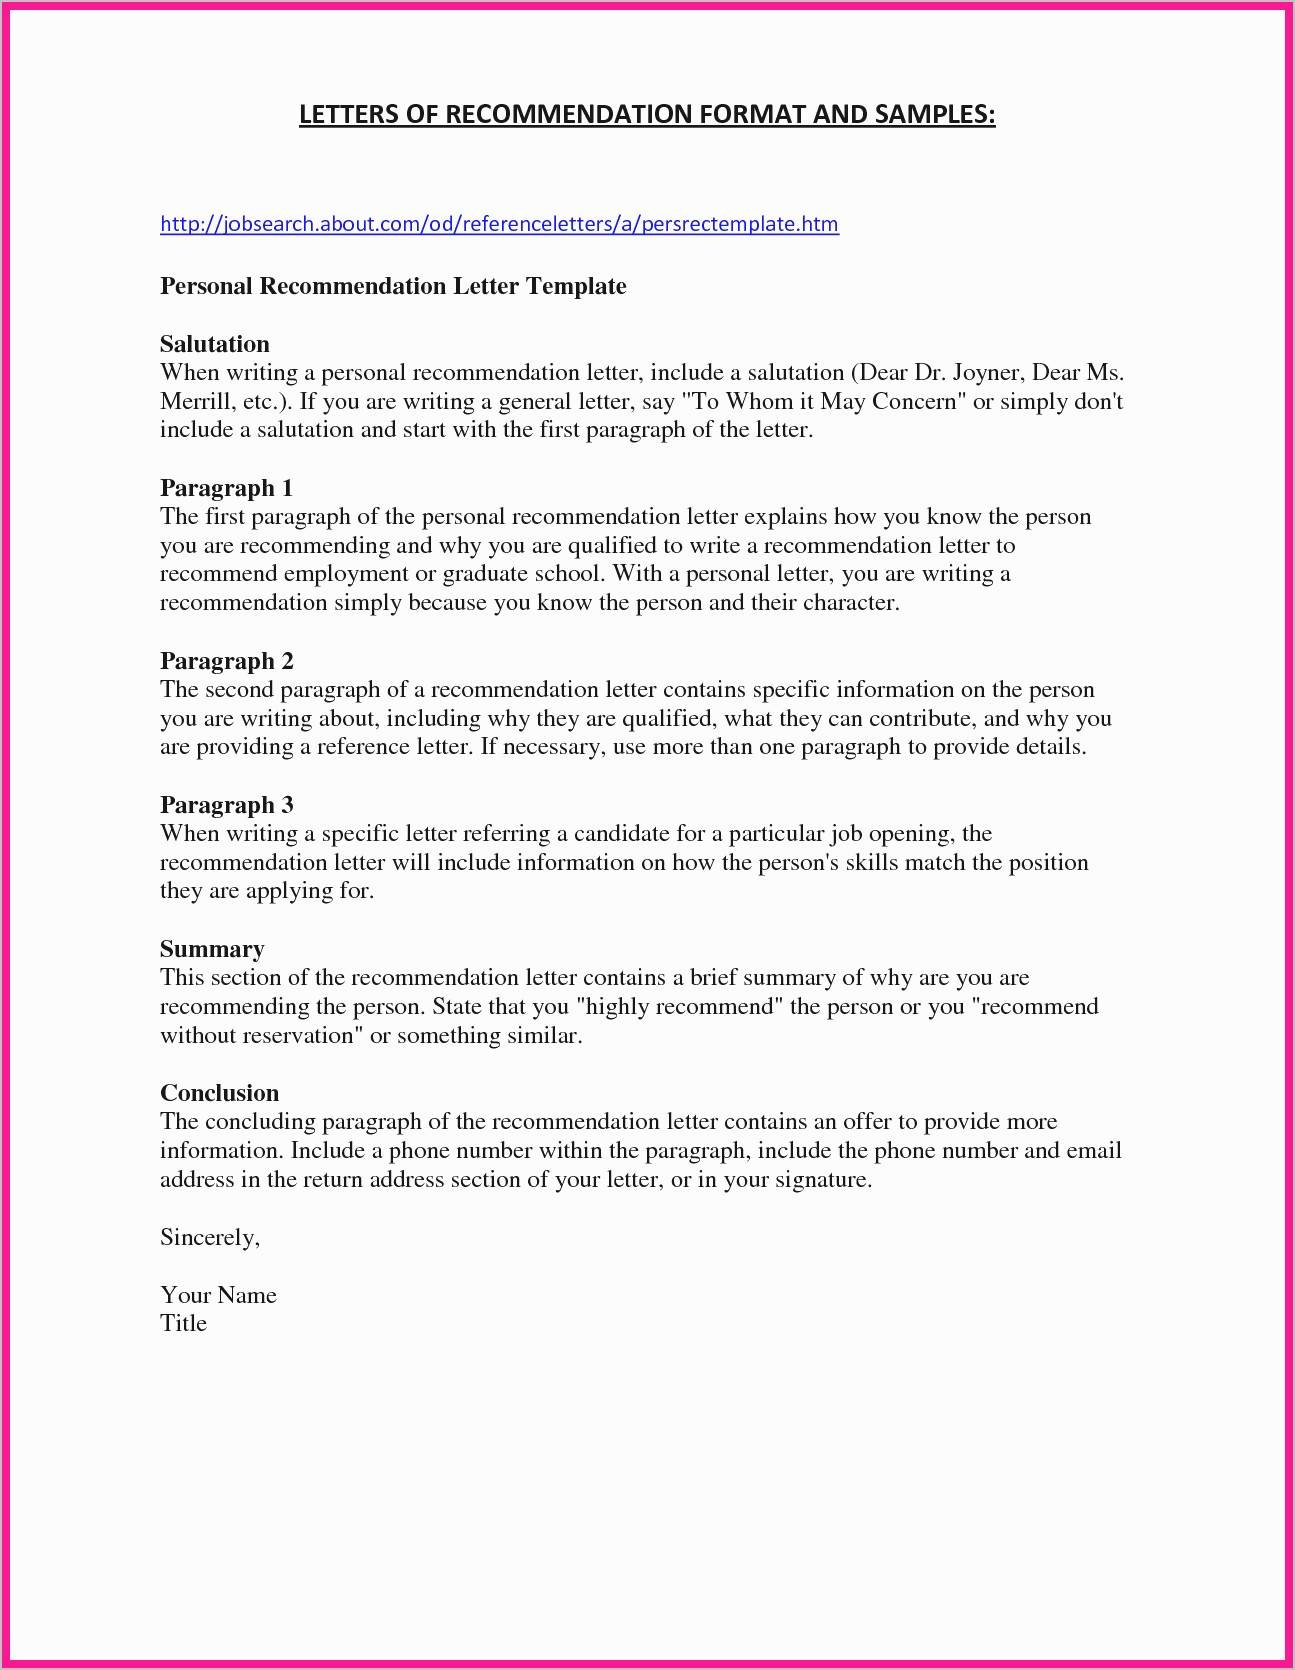 General Reference Letter Template - General Letter Re Mendation Template Recordplayerorchestra